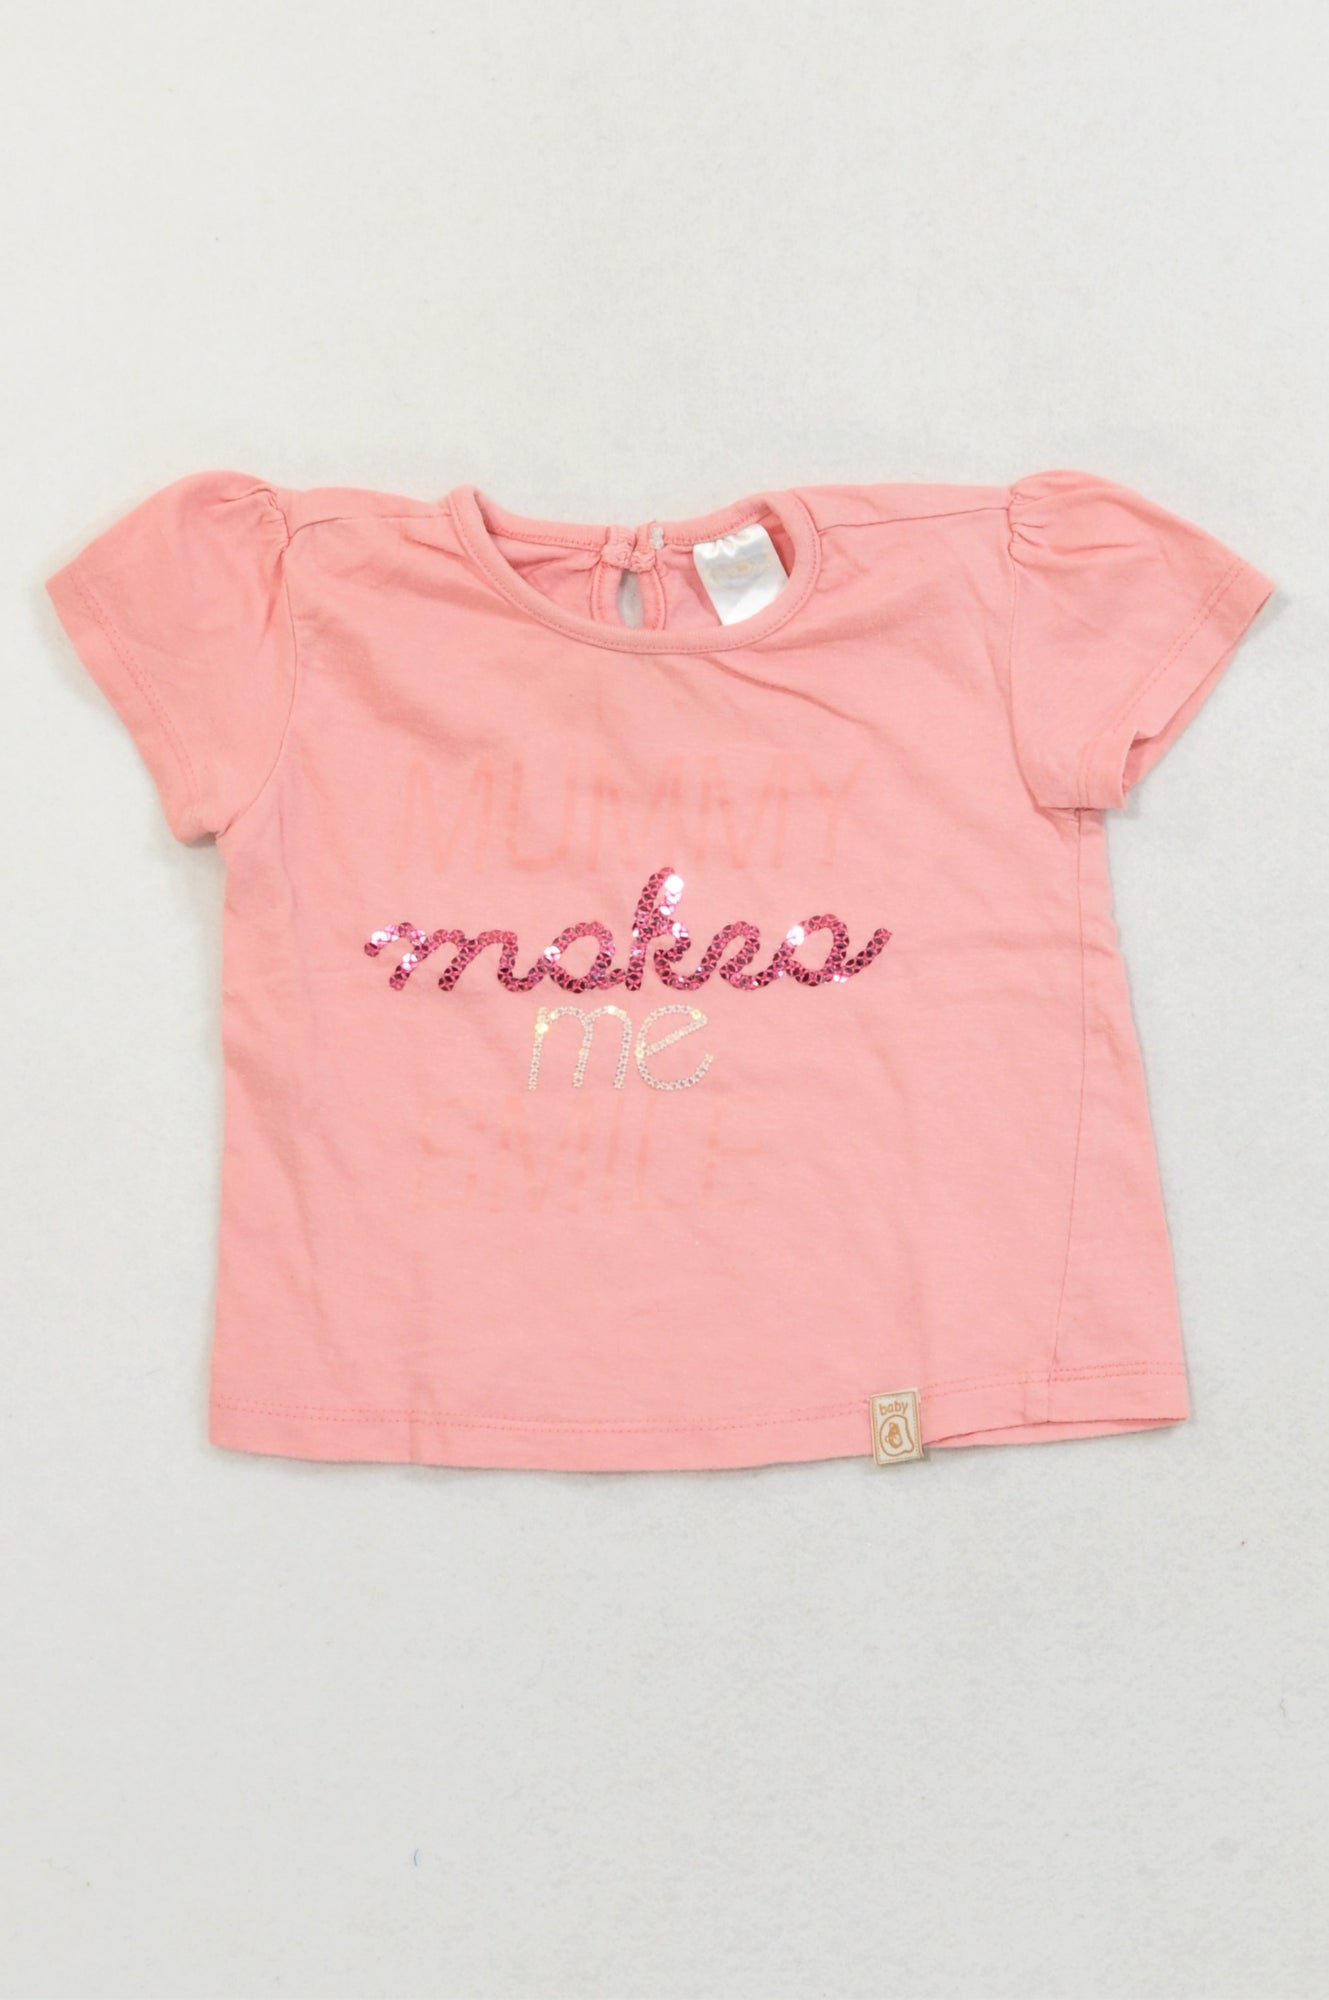 Ackermans Pink Mummy Make Me Smile T-shirt Girls 6-12 months